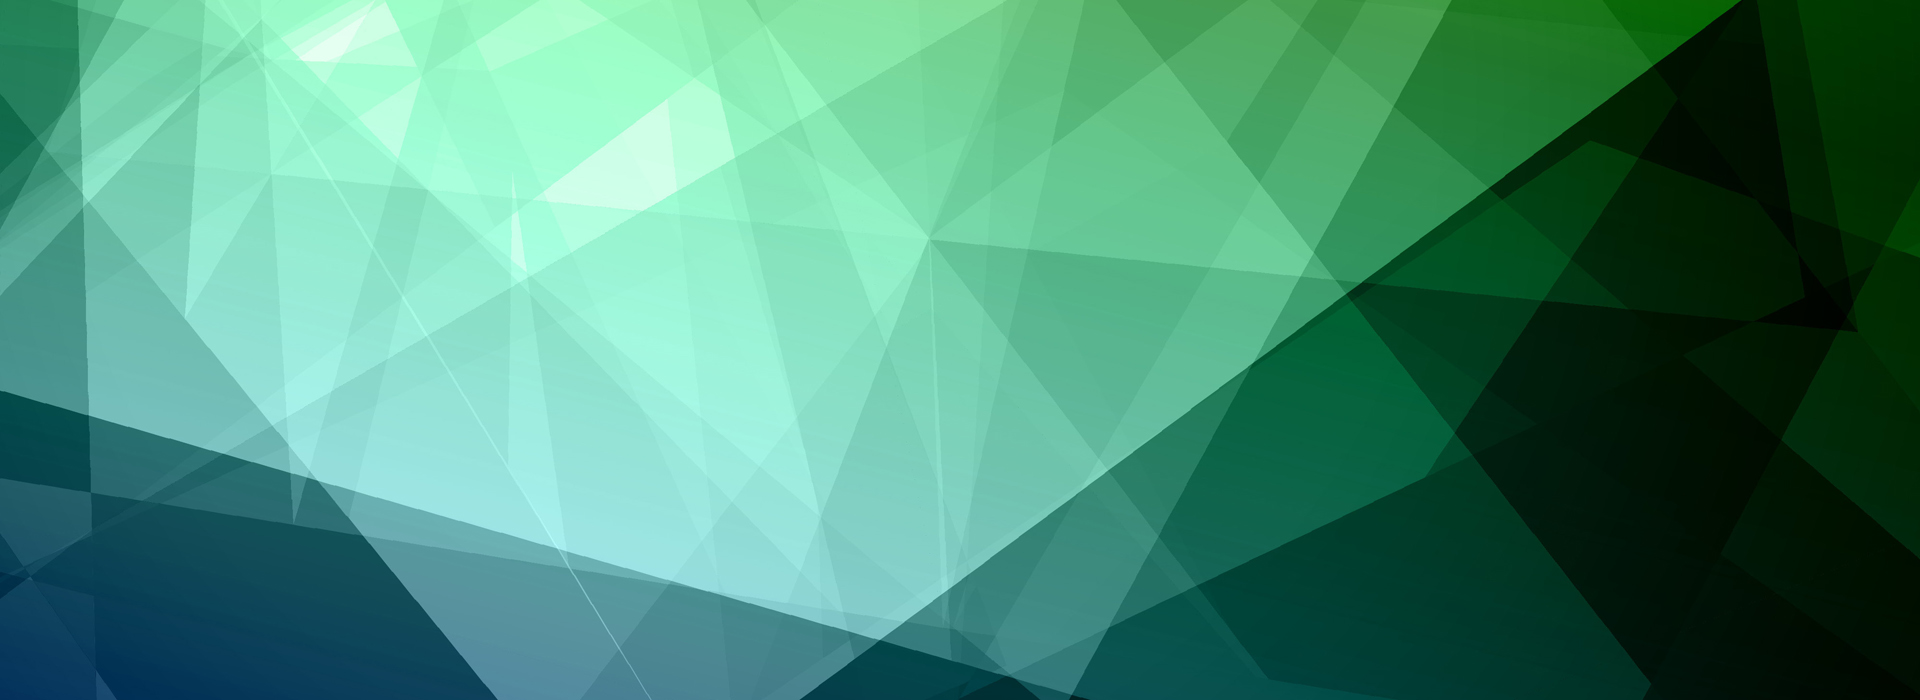 Blue and green gradient triangular background